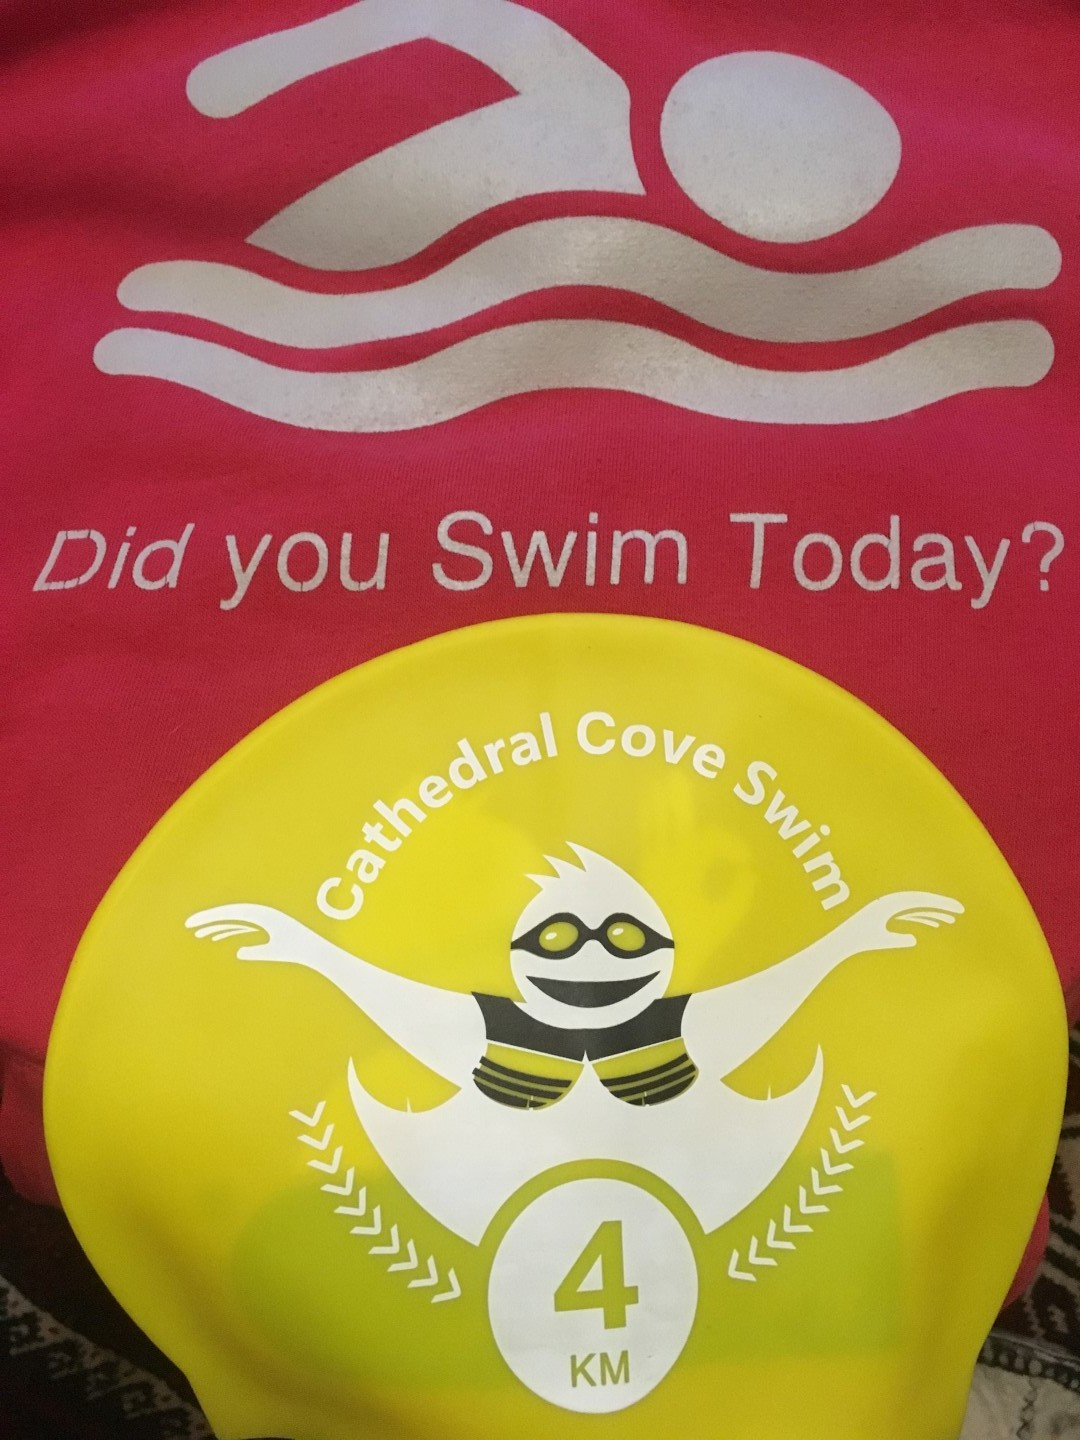 Cathedral Cover swim.JPG